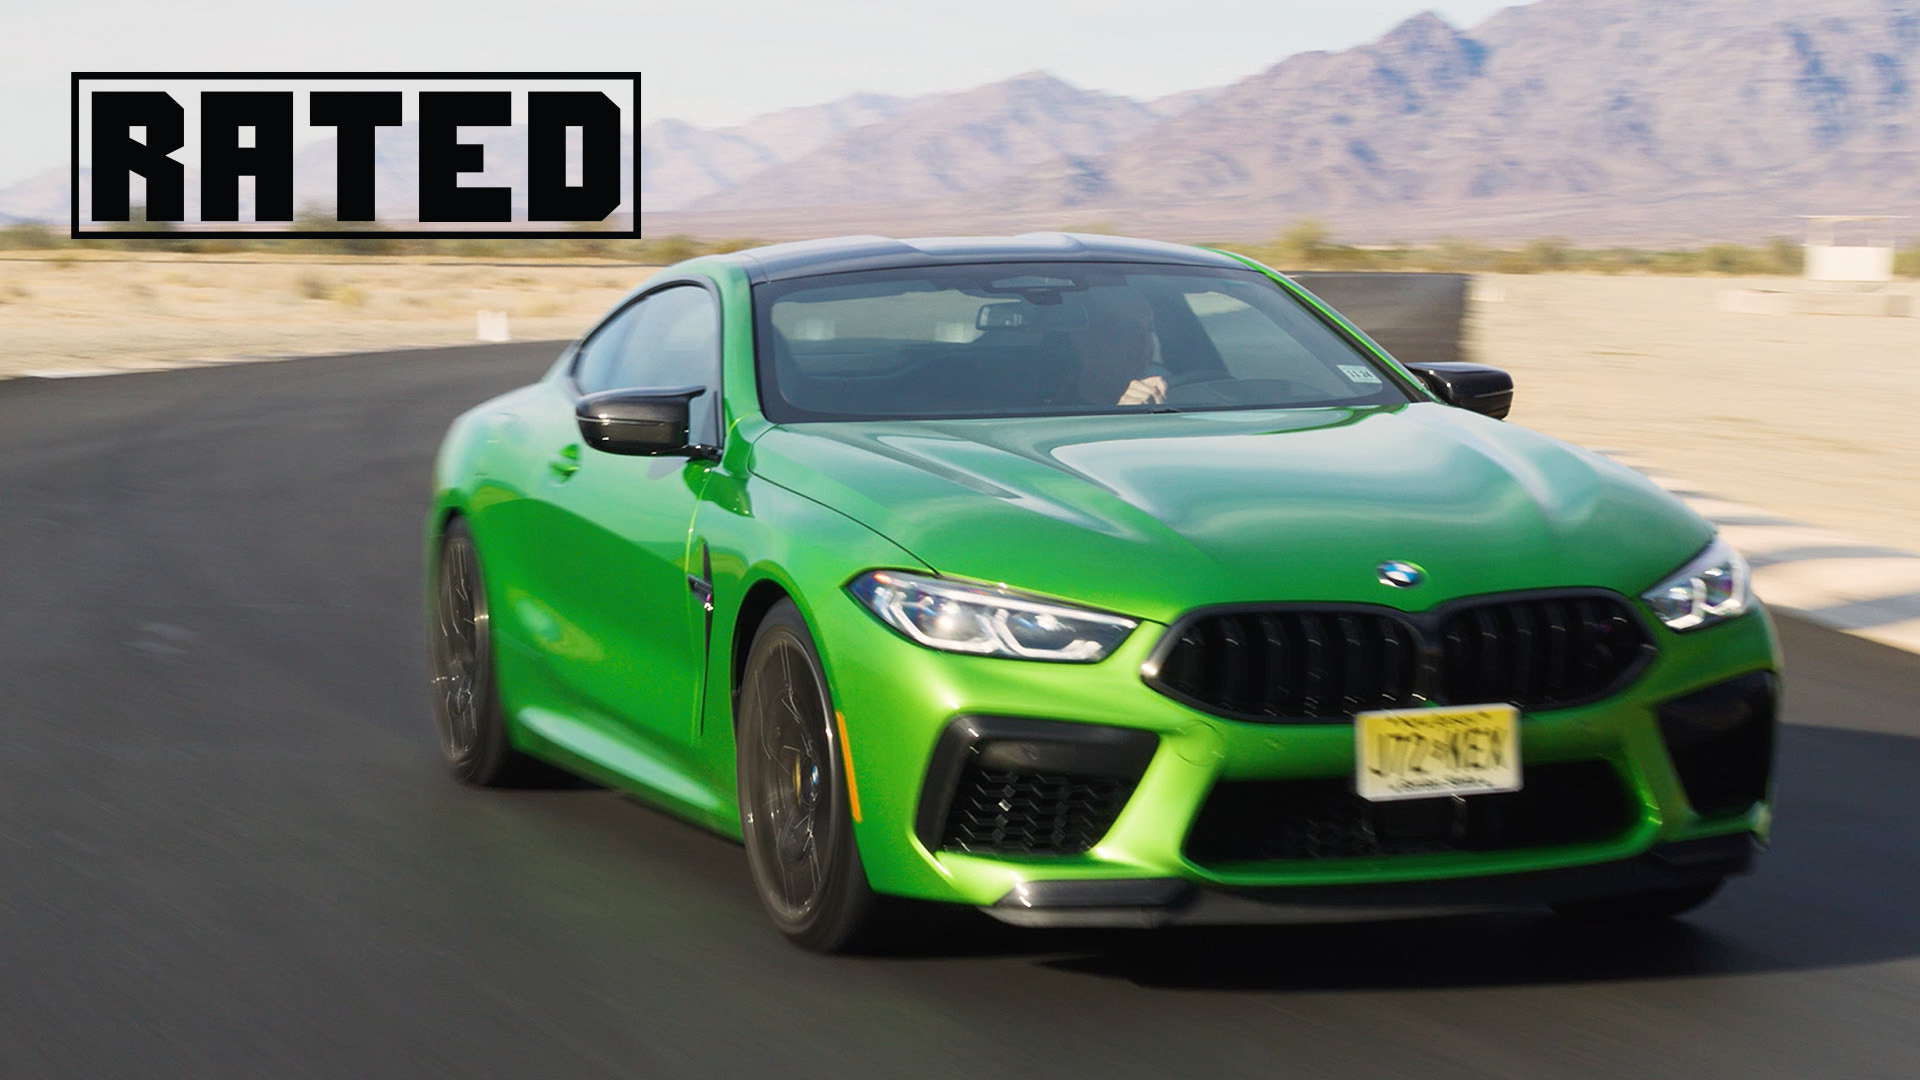 Rated 2020 BMW M8